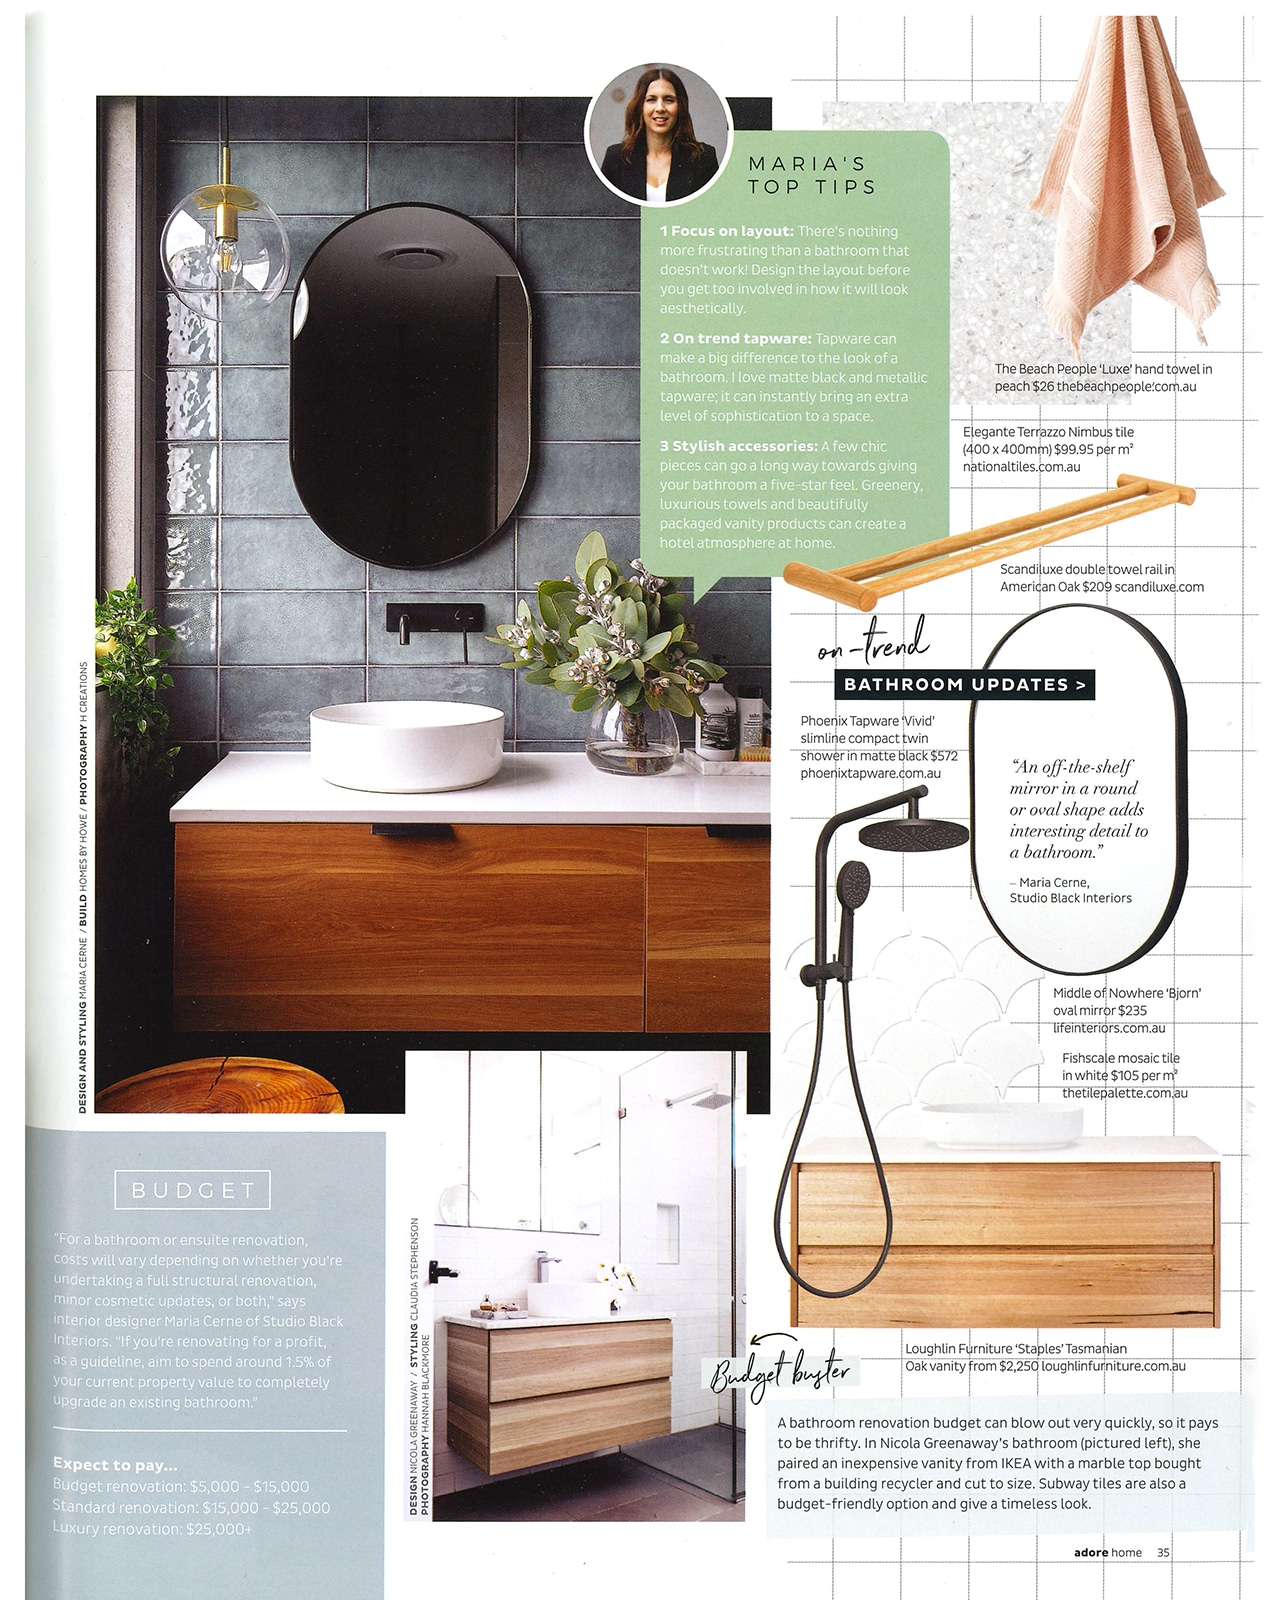 Studio Black Interiors featured in Adore Magazine.